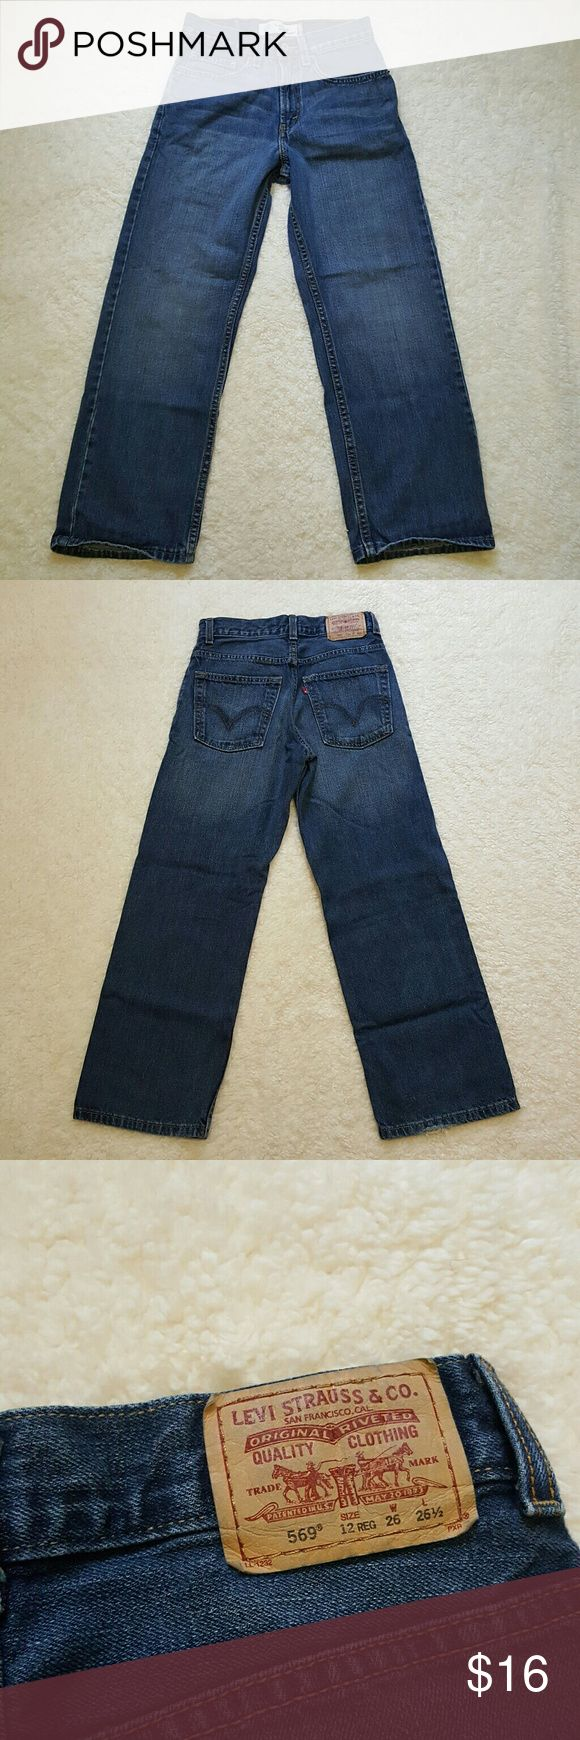 Boy's Levi's 569 Loose Straight Blue Jeans Good Condition. Some Signs Of Wear. Levi's Bottoms Jeans